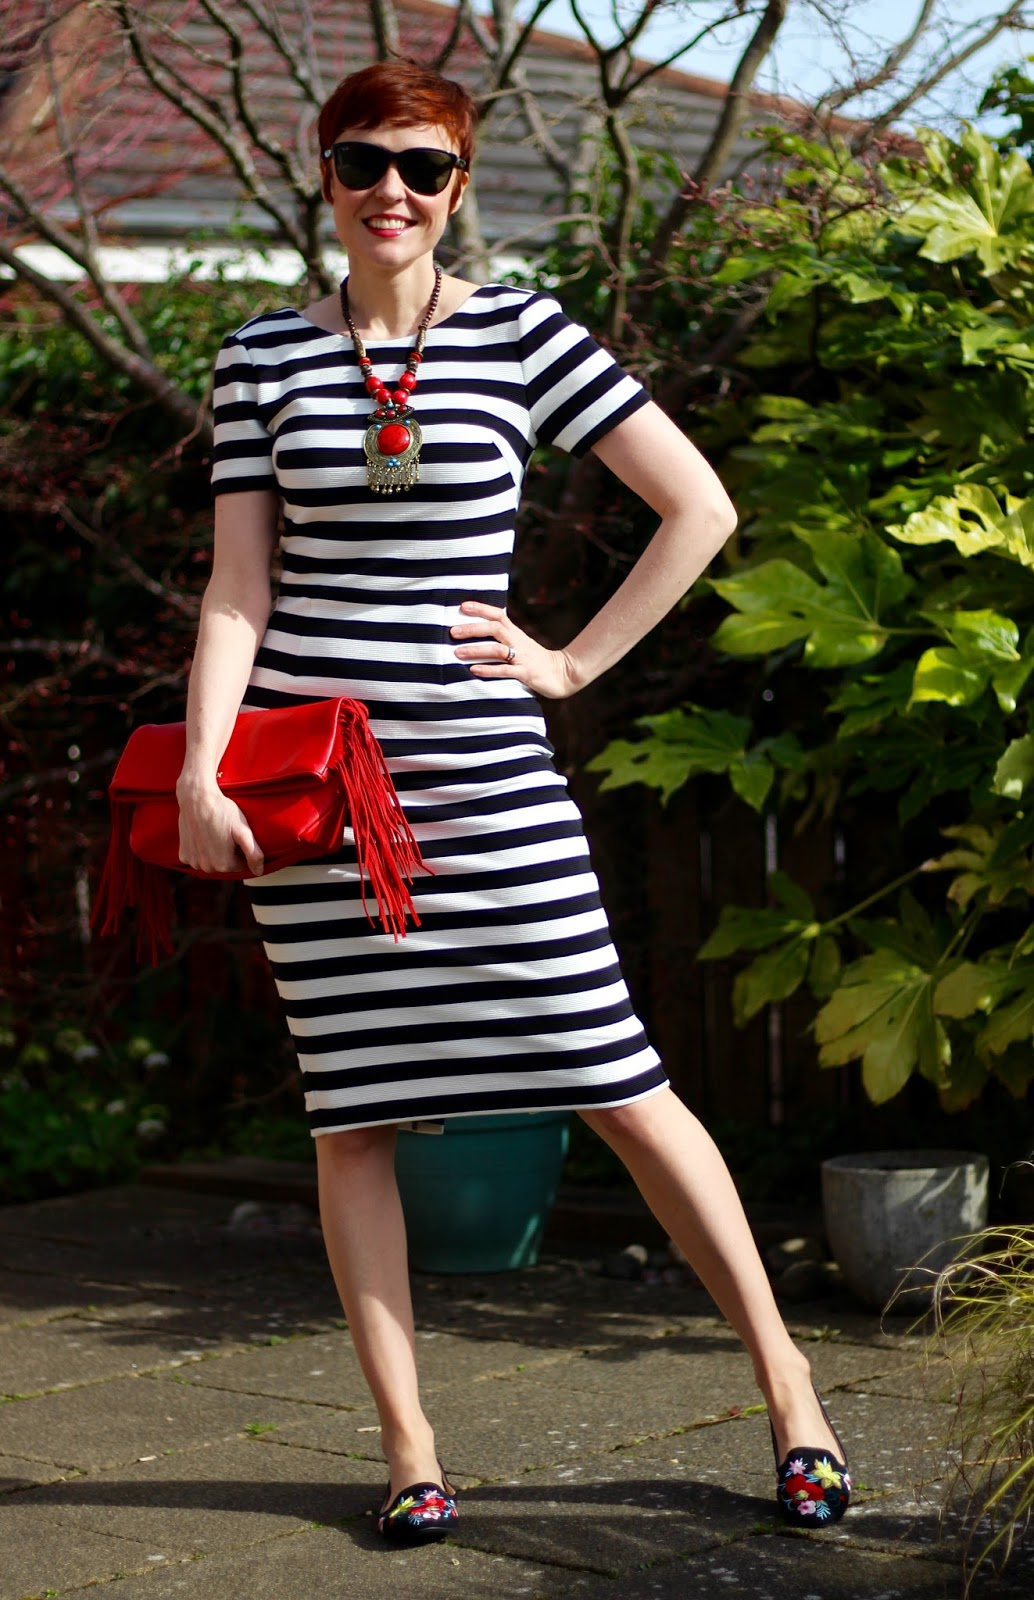 Boden Black and White Striped Dress, Red Fiorelli Bag, Embroidered Topshop Shoes   Spring style, over 40   Fake Fabulous